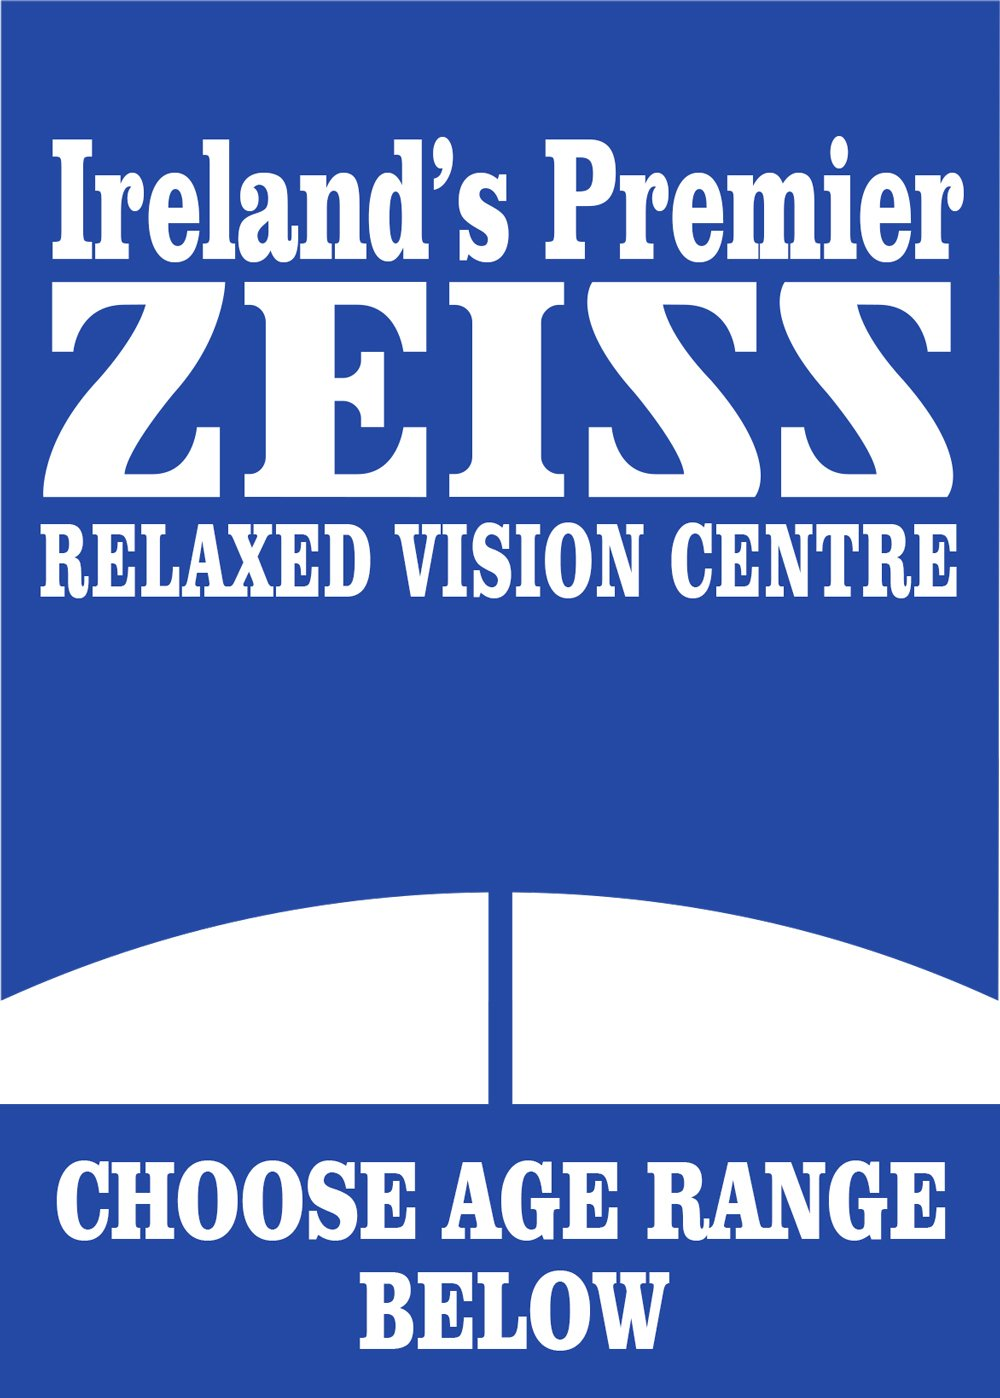 Ireland's Premier Zeiss Relaxed Vision Centre in Belfast